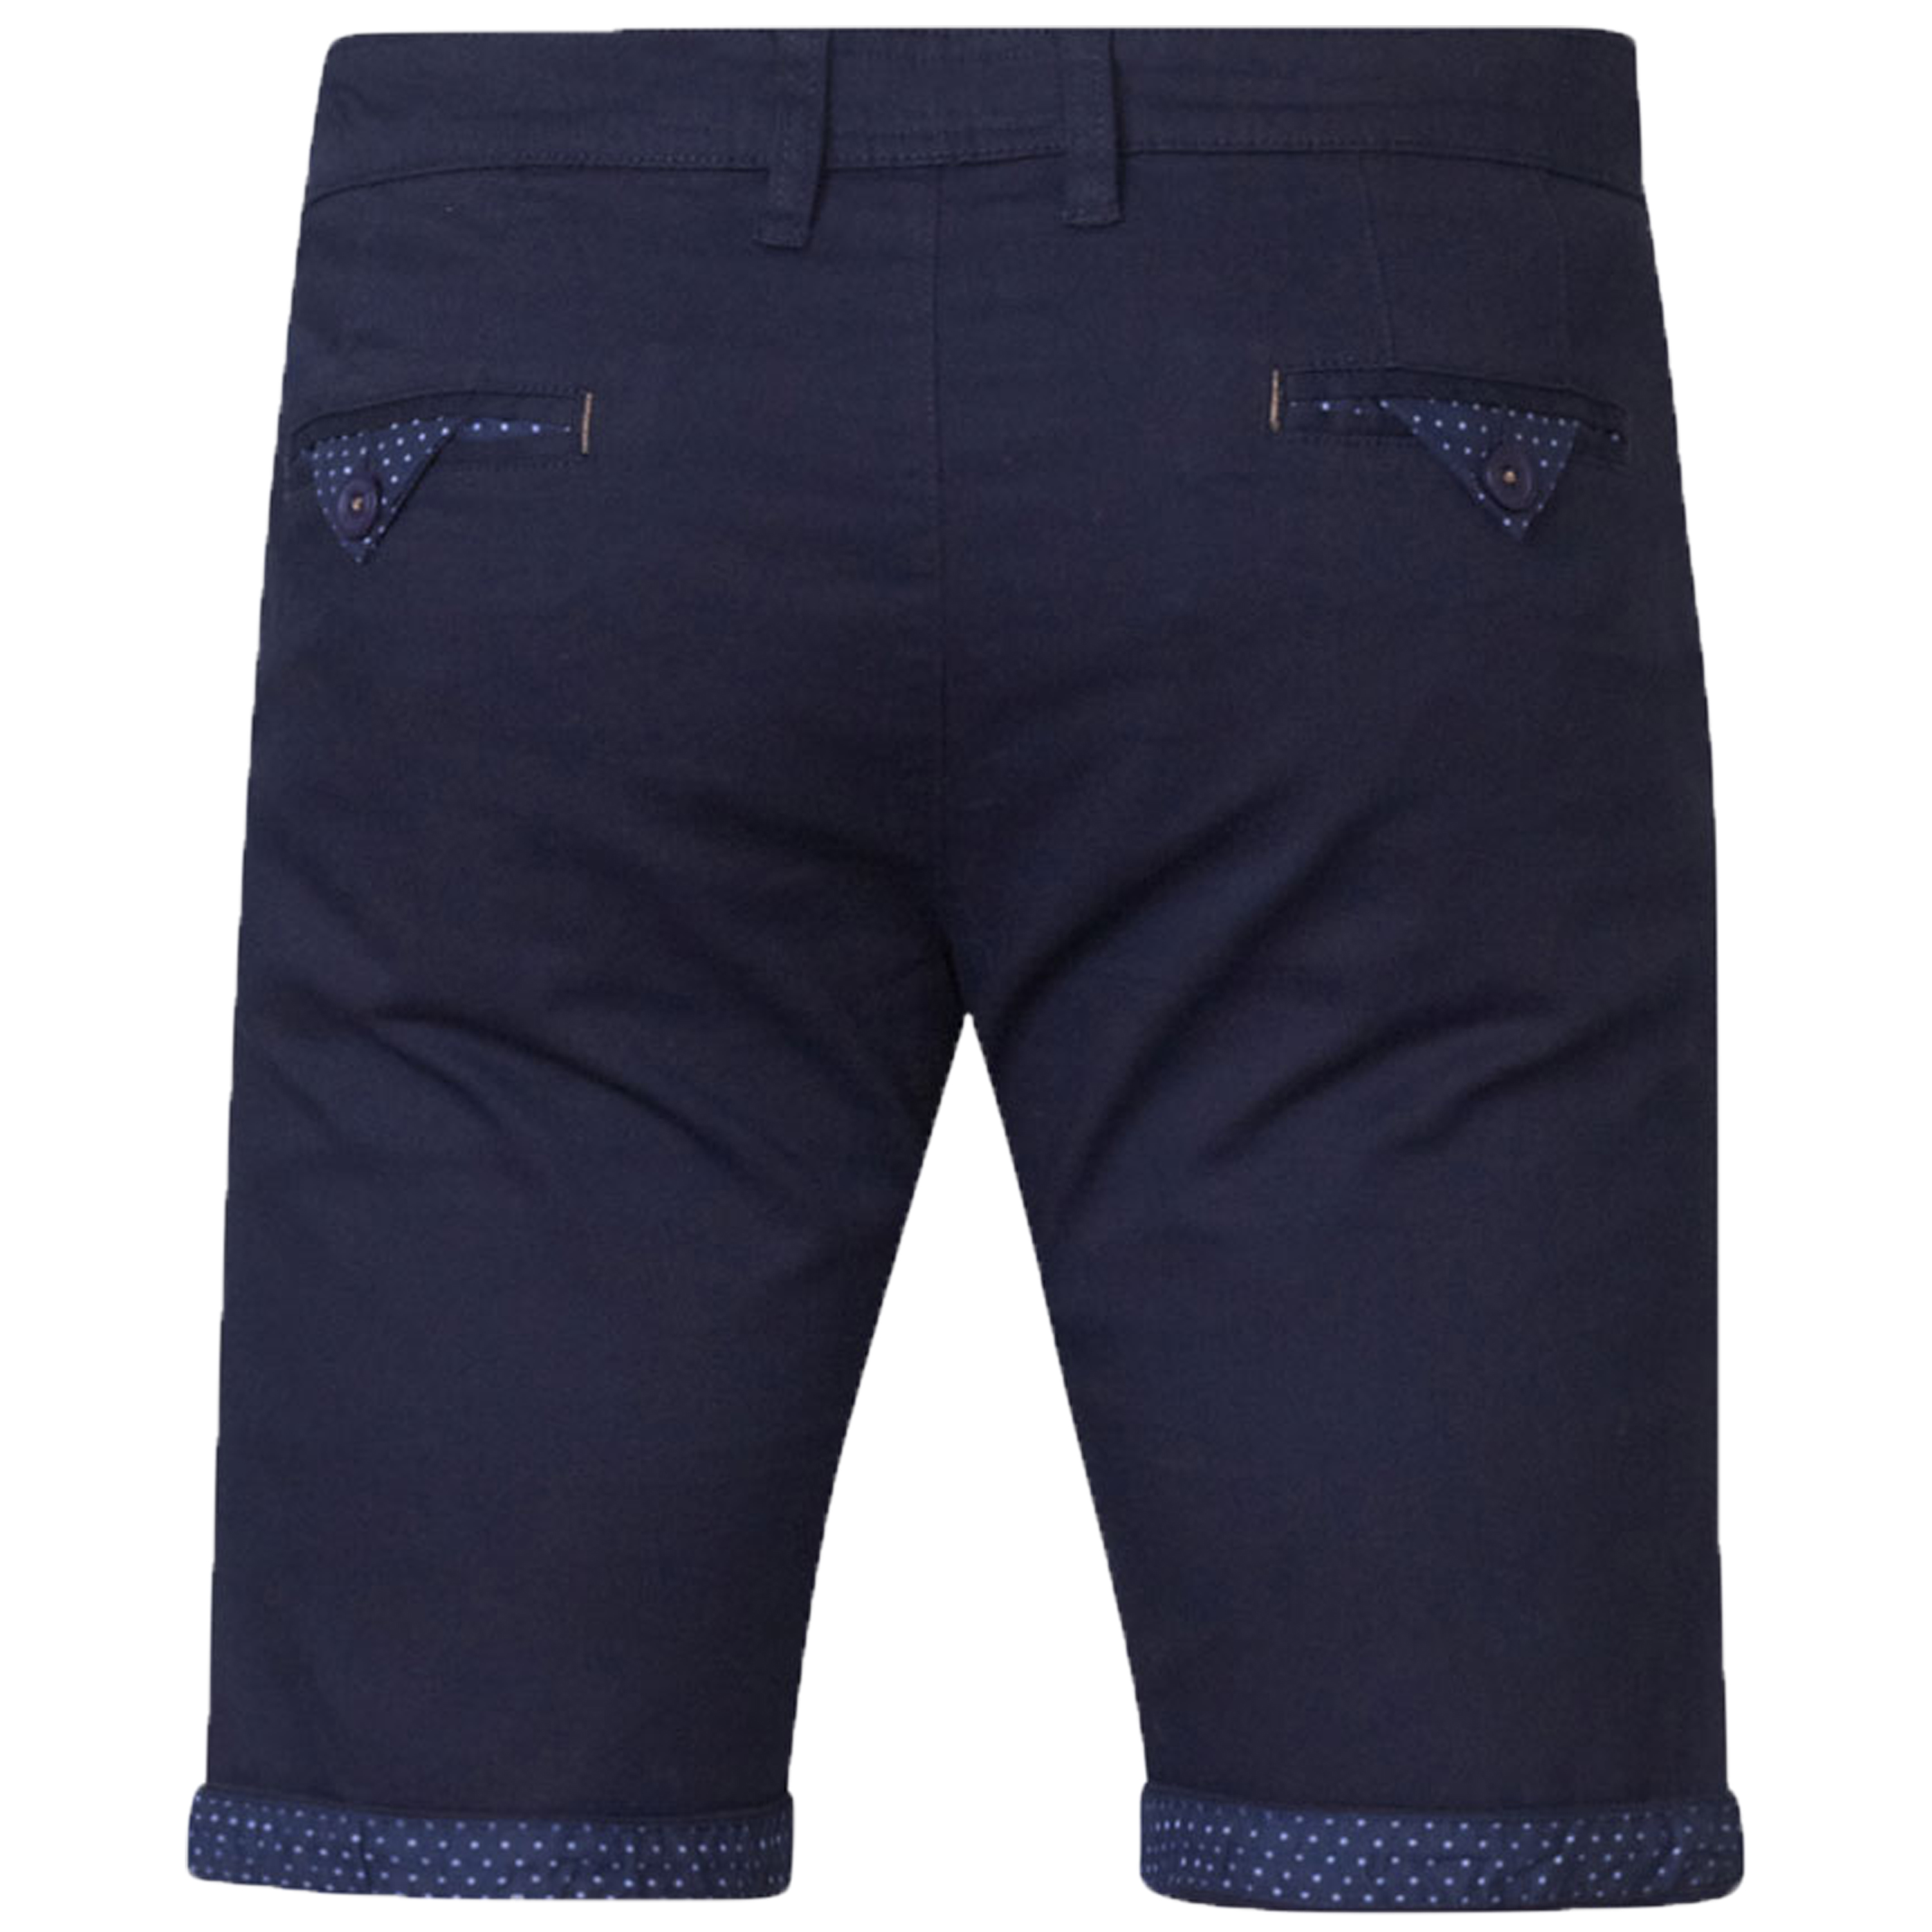 Mens-Chino-Shorts-D555-Duke-Big-King-Size-Roll-Up-Knee-Length-Polka-Pattern-New thumbnail 3